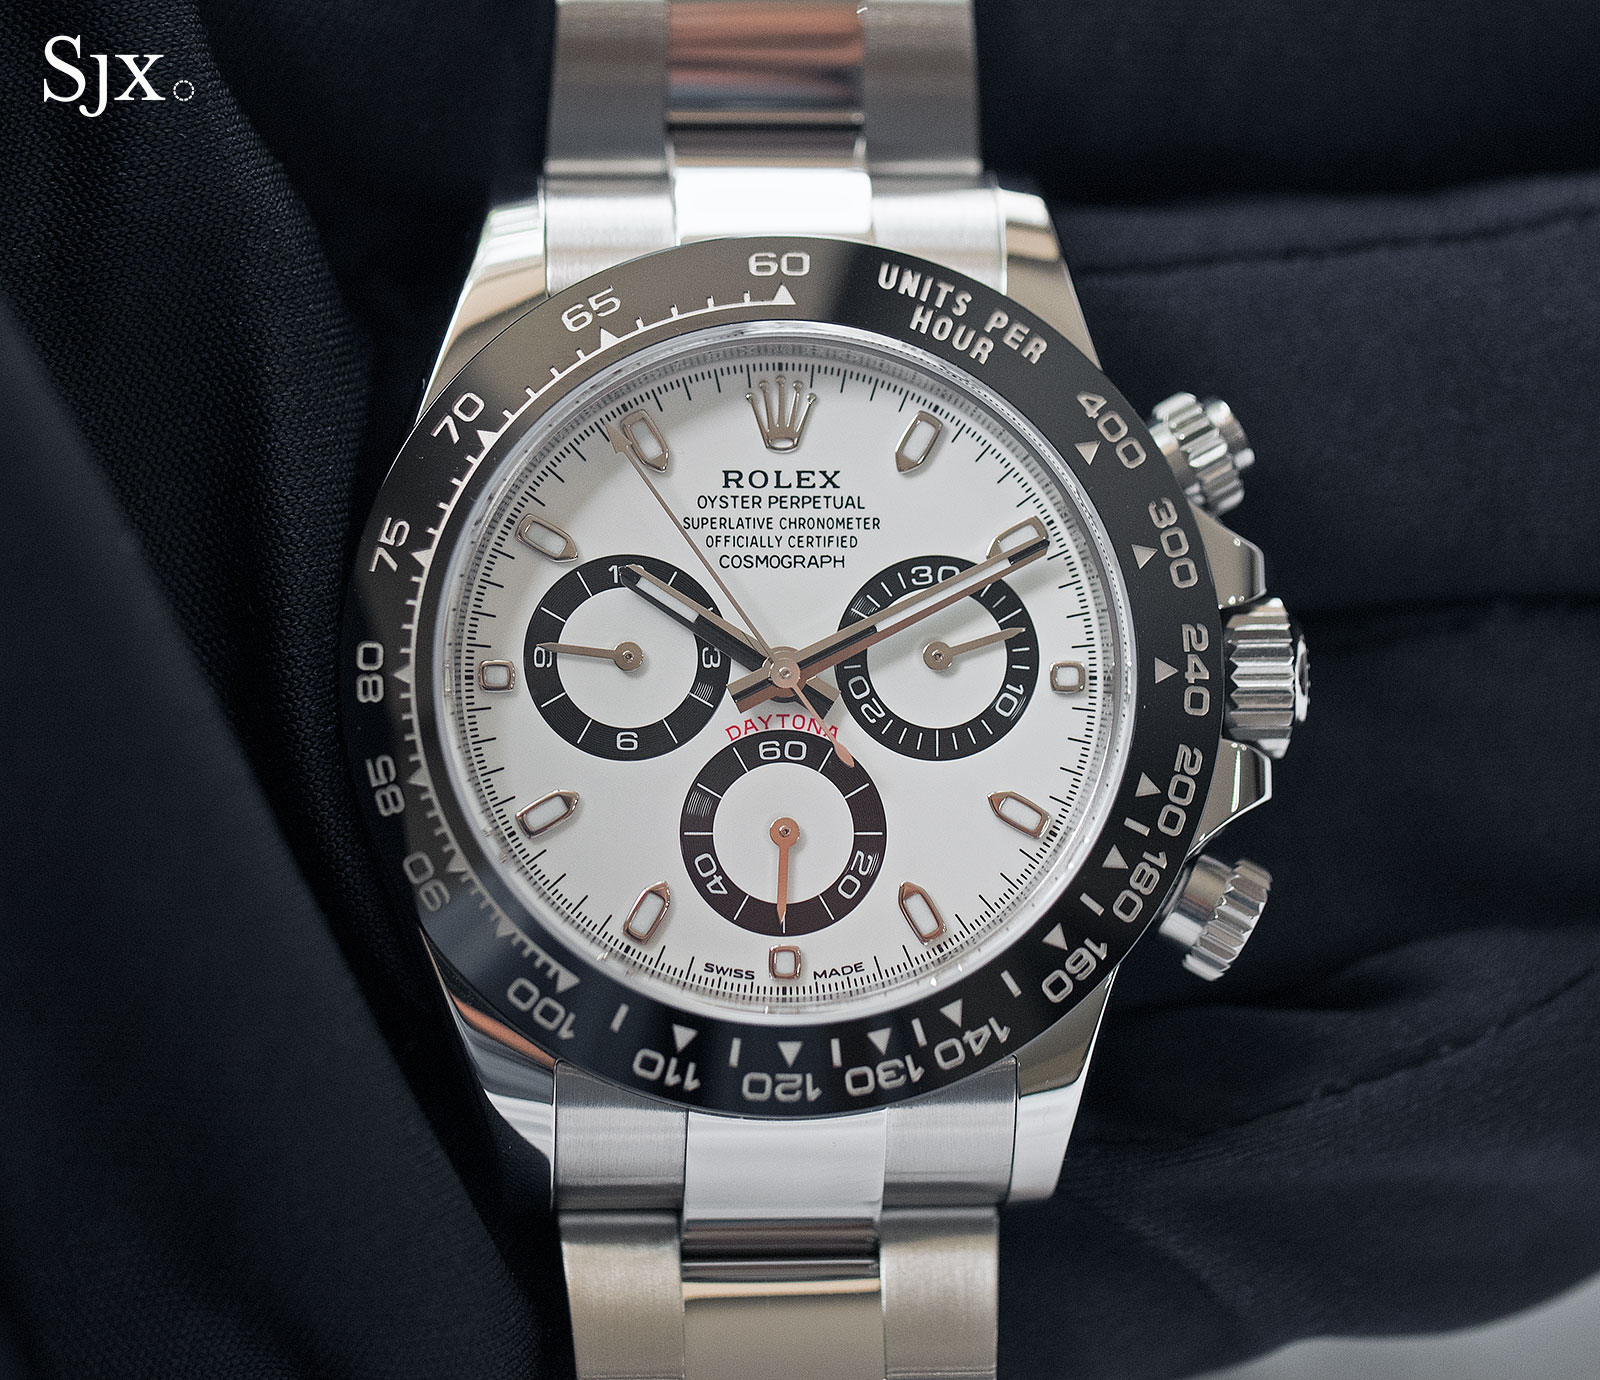 Prudent Meditations on the Rolex Daytona Ceramic